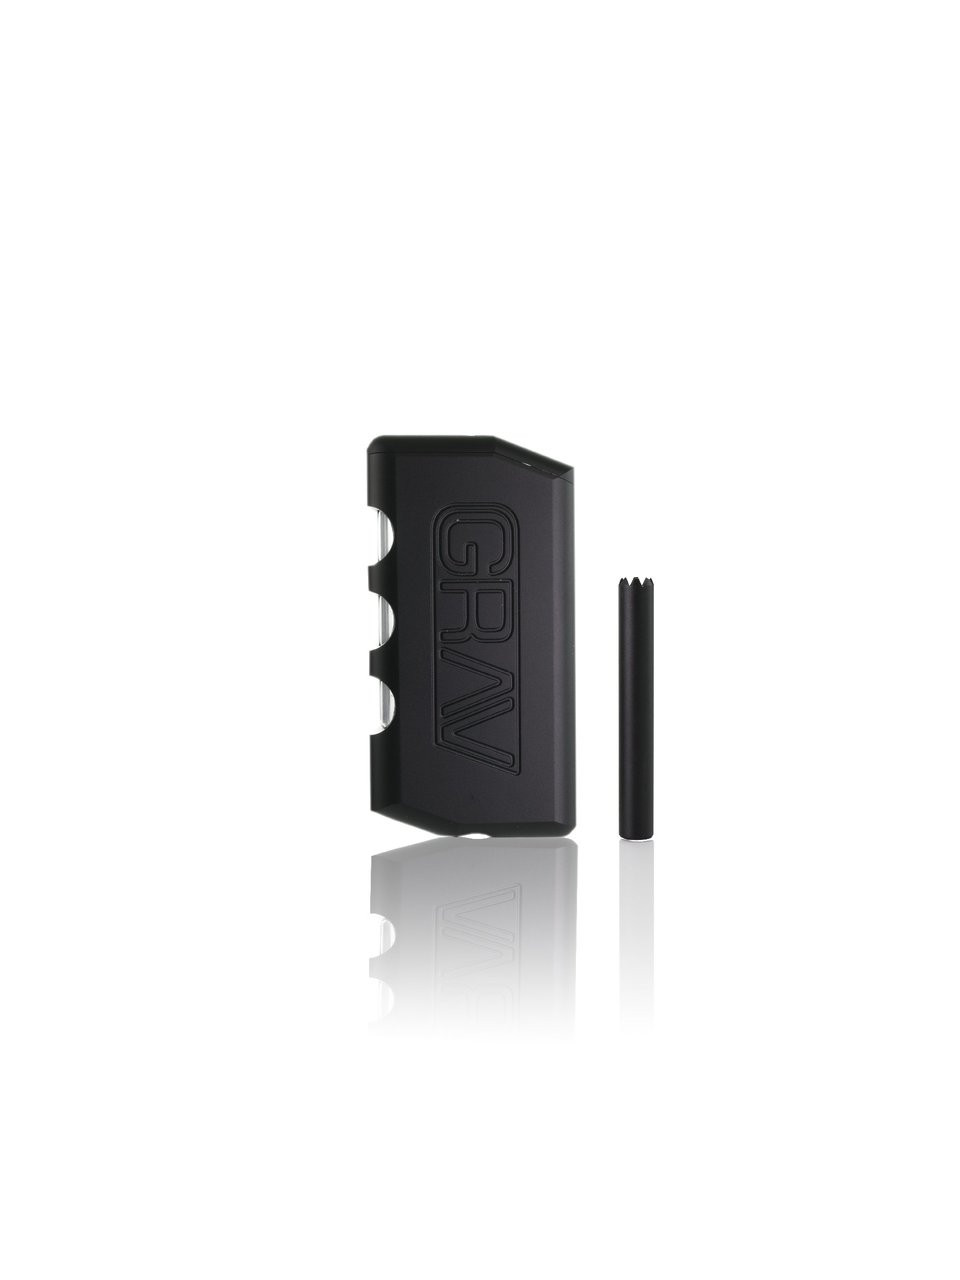 FLOATS Small Black DUGOUT